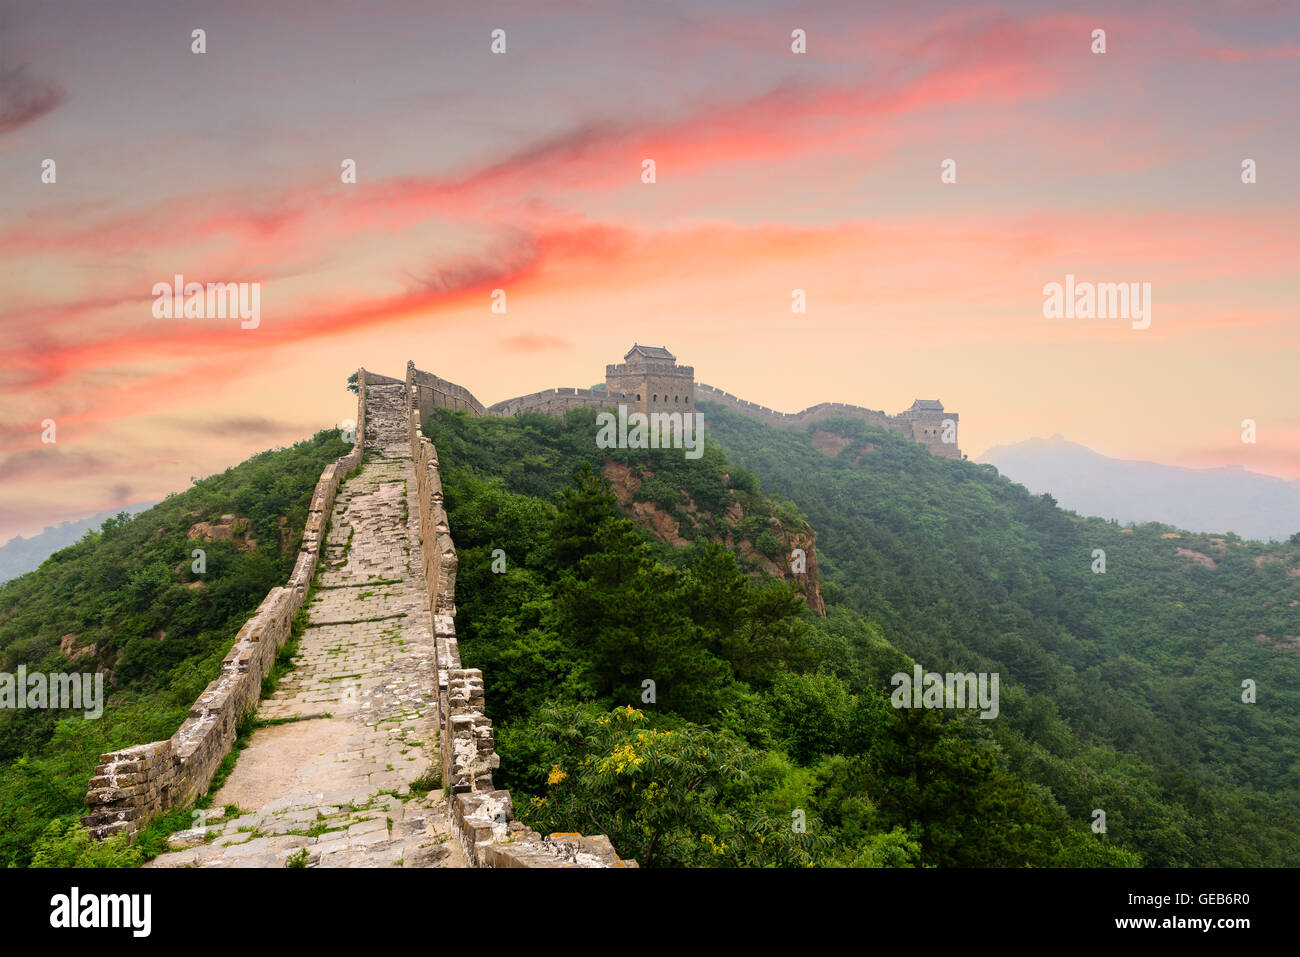 Great Wall of China at the Jinshanling section. - Stock Image